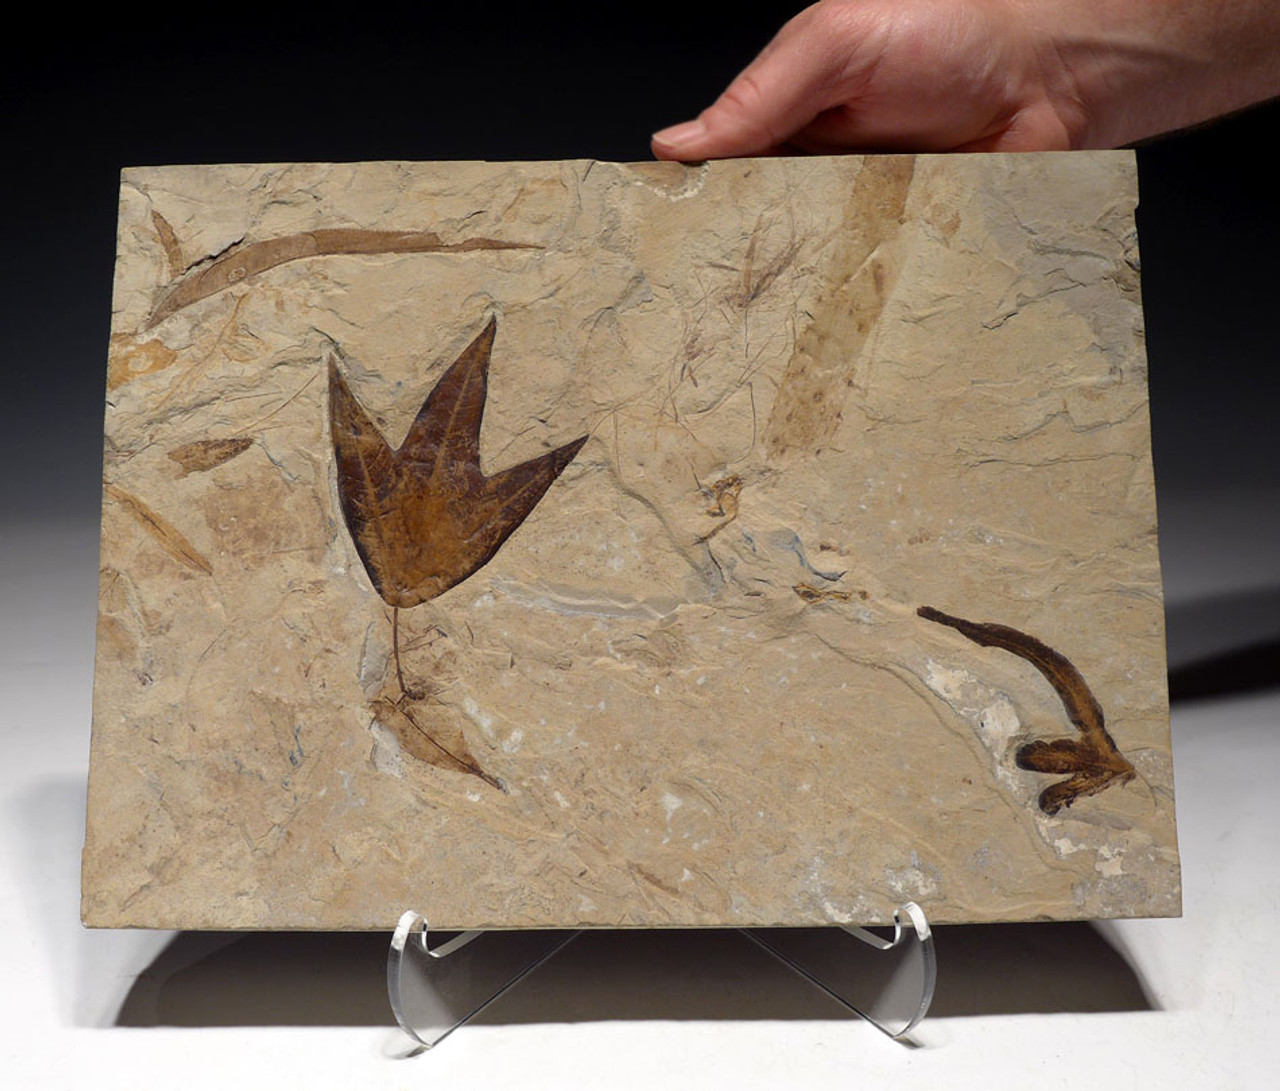 PL084 - SPECTACULAR LARGE FOSSIL SLAB WITH EOCENE FEATHER AND ASSOCIATED LEAF FOSSILS FROM THE GREEN RIVER FORMATION